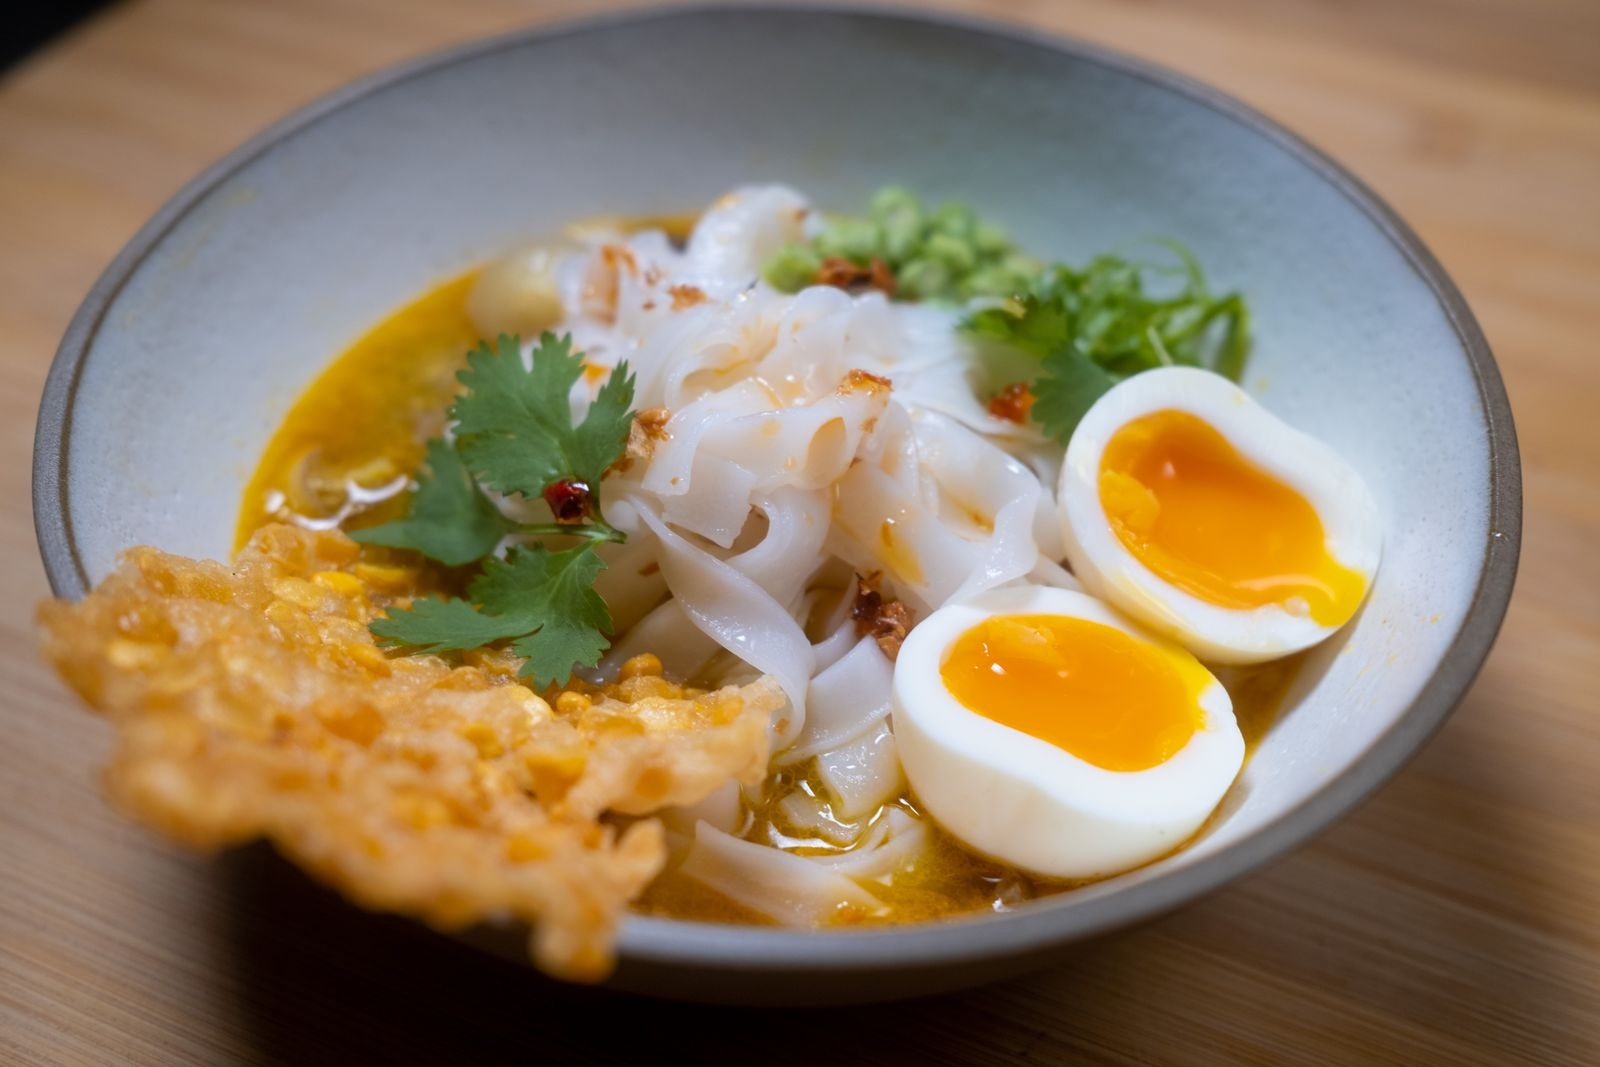 A bowl of a yellow sauce with rice noodles, with a jammy egg and fritter on the side